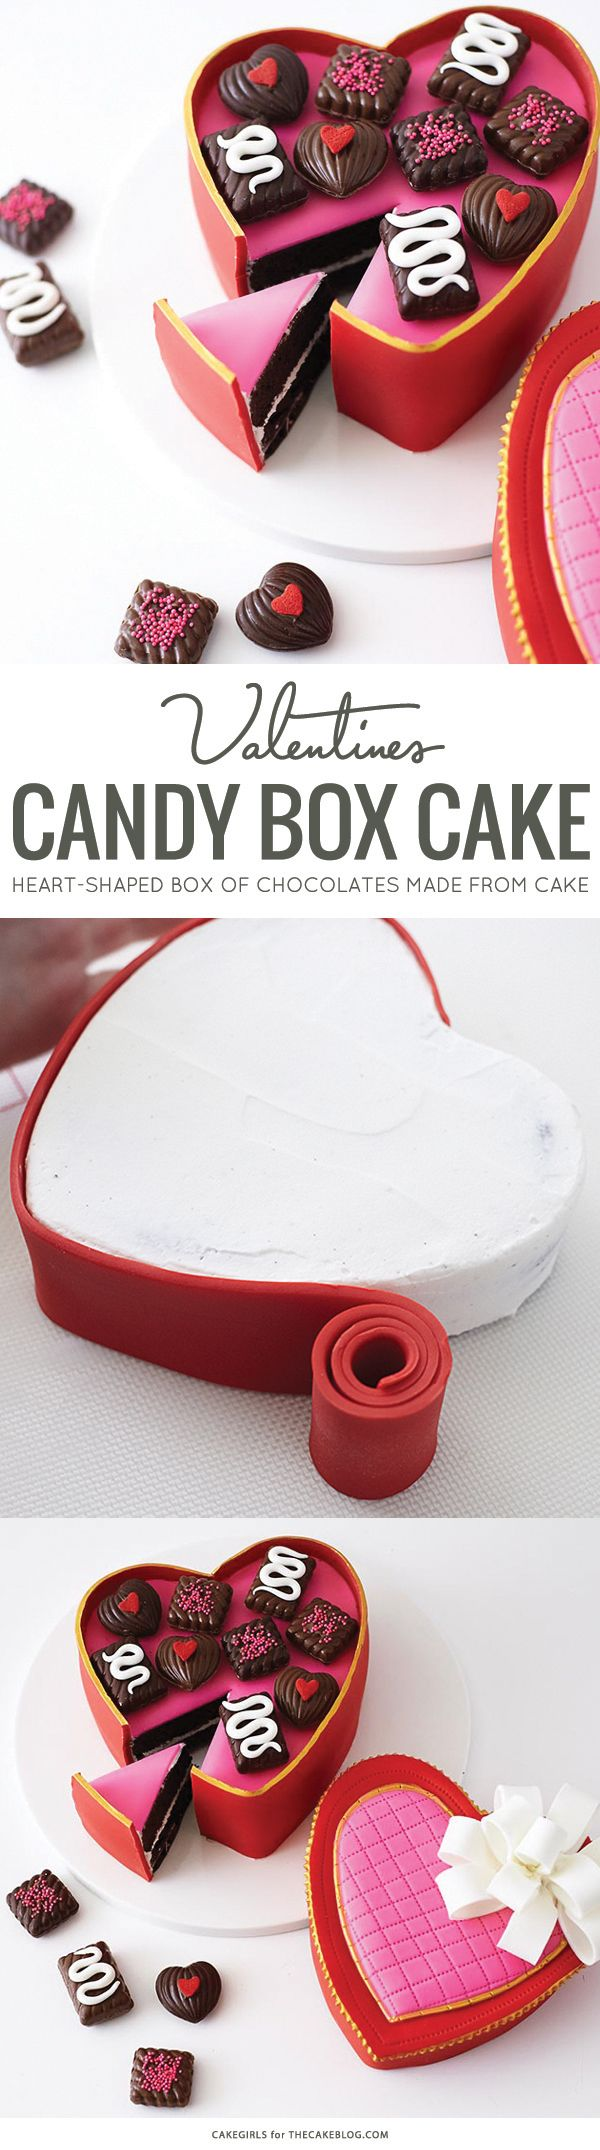 It's a cake! | Learn how to make this Valentine's candy box cake with a step-by-step tutorial. A heart-shaped box of chocolates made from cake. By Cakegirls for TheCakeBlog.com.